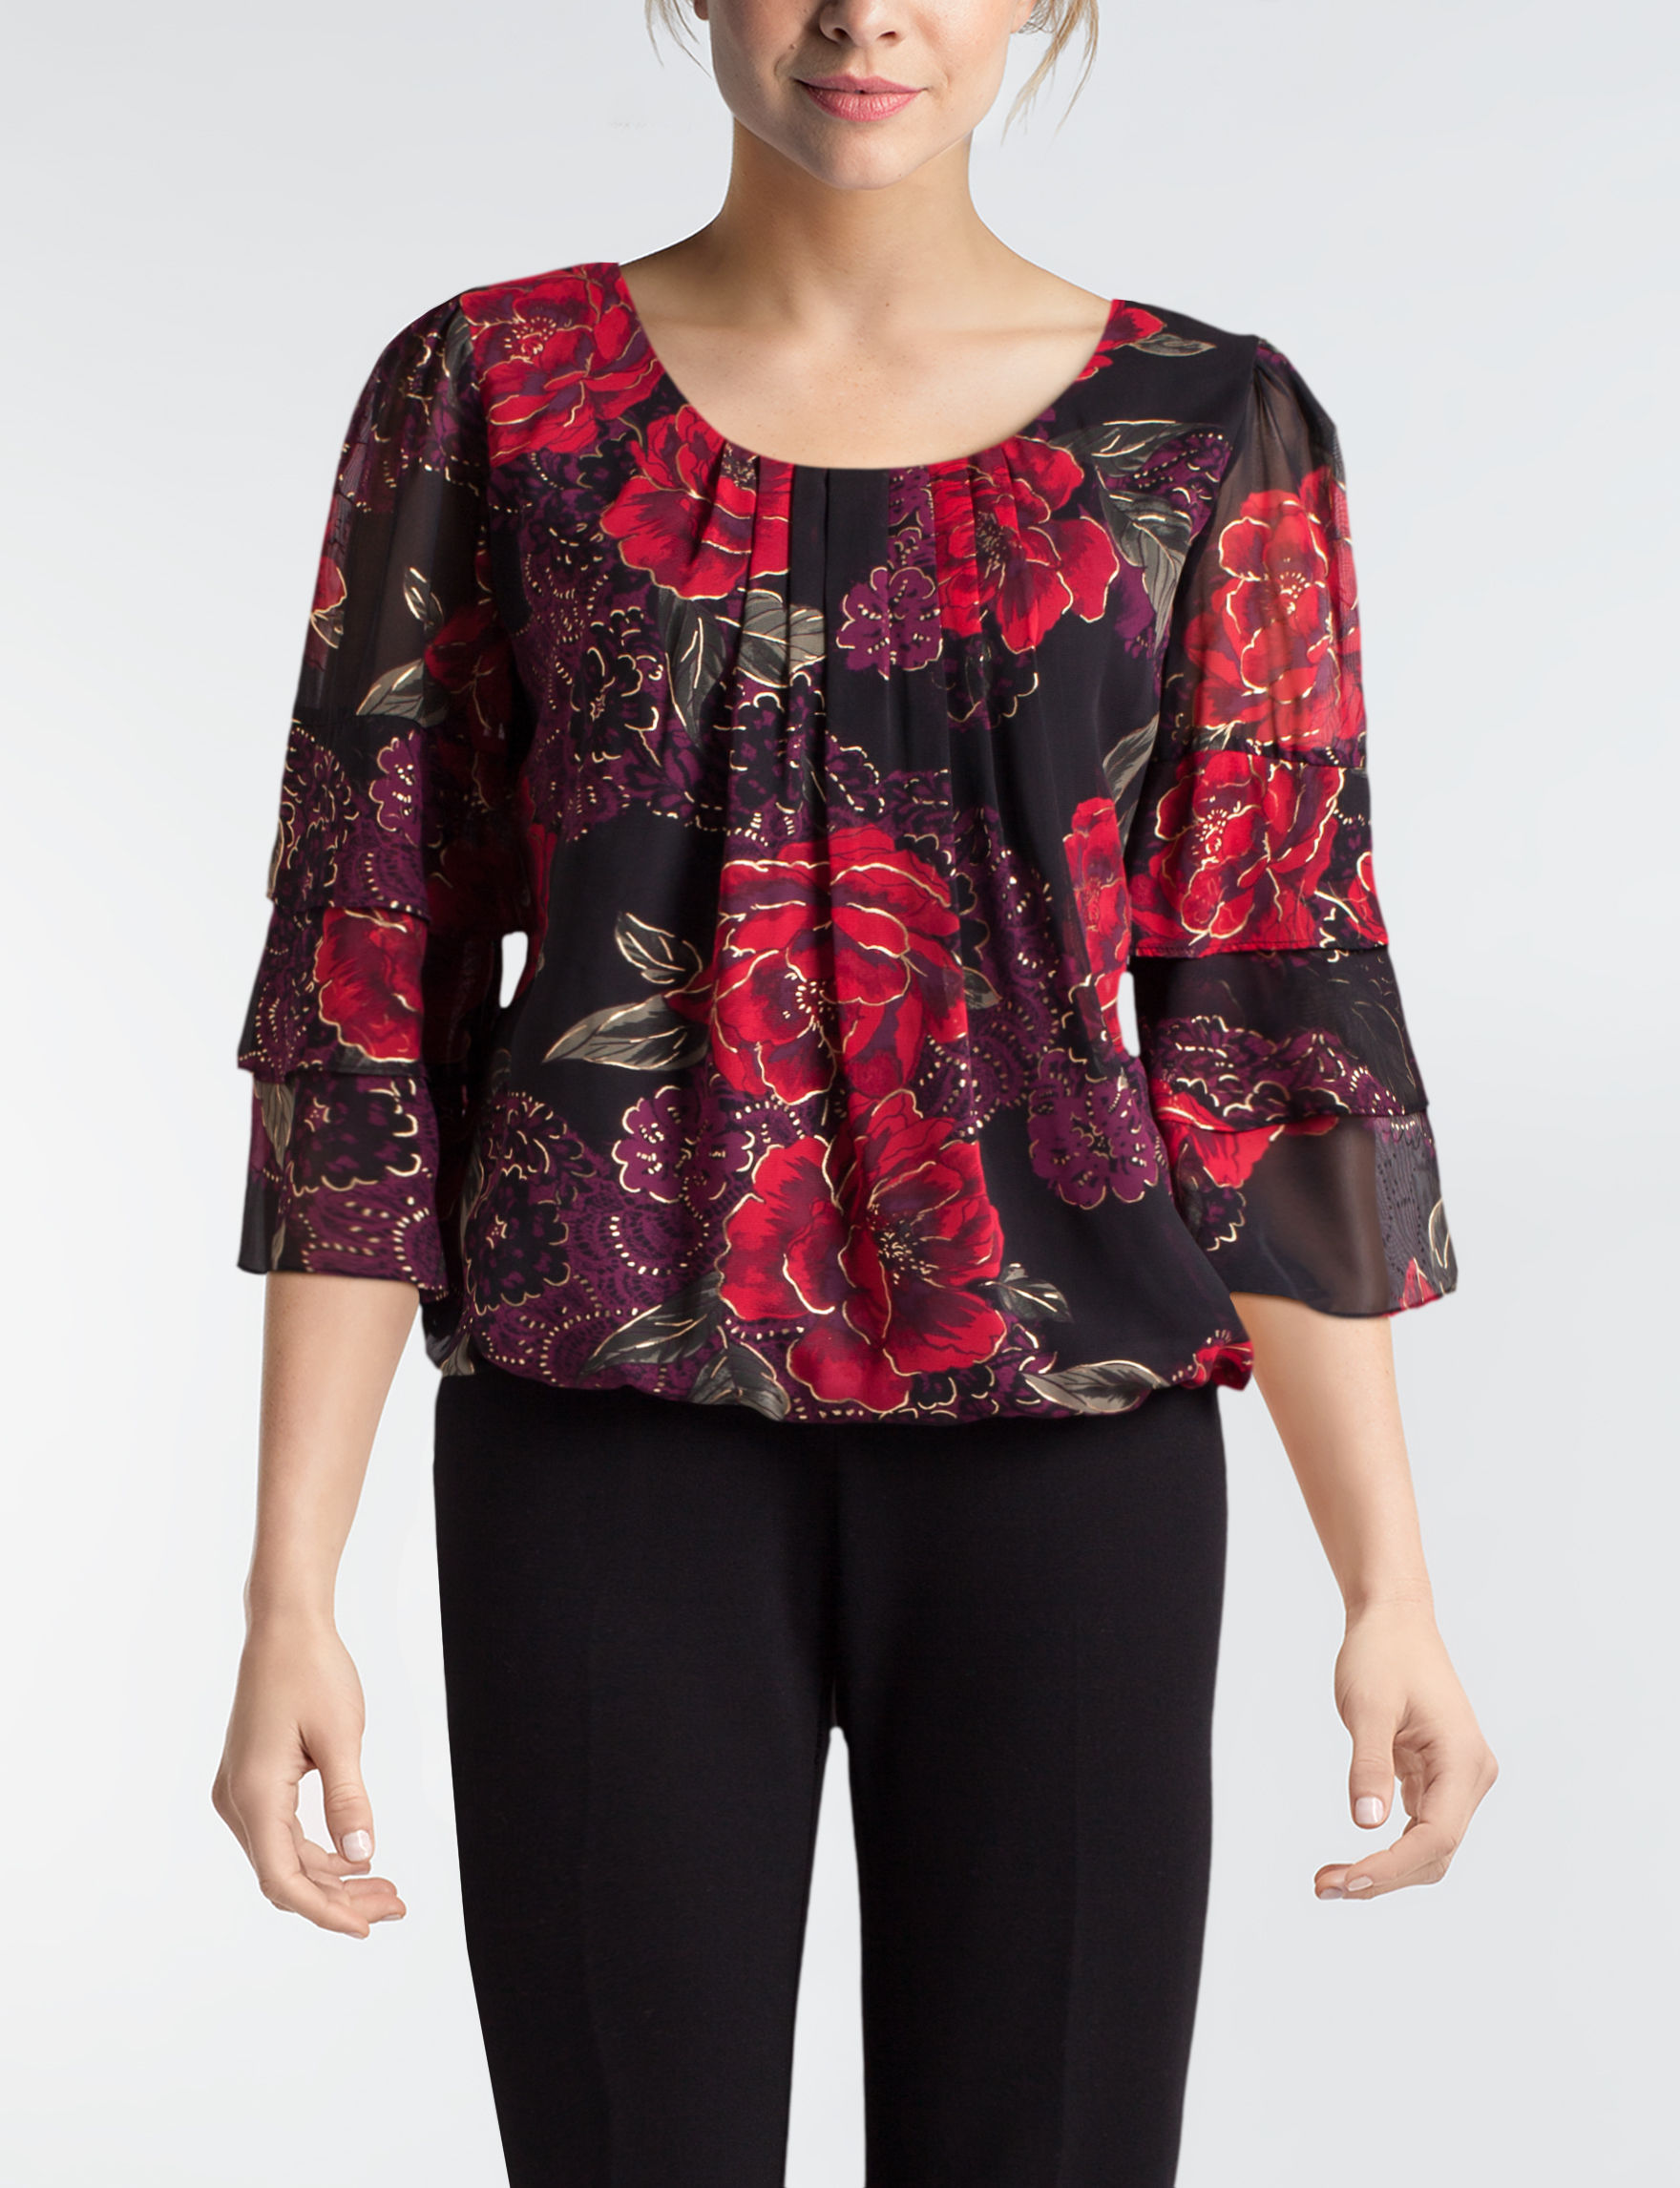 Sara Michelle Red Floral Shirts & Blouses